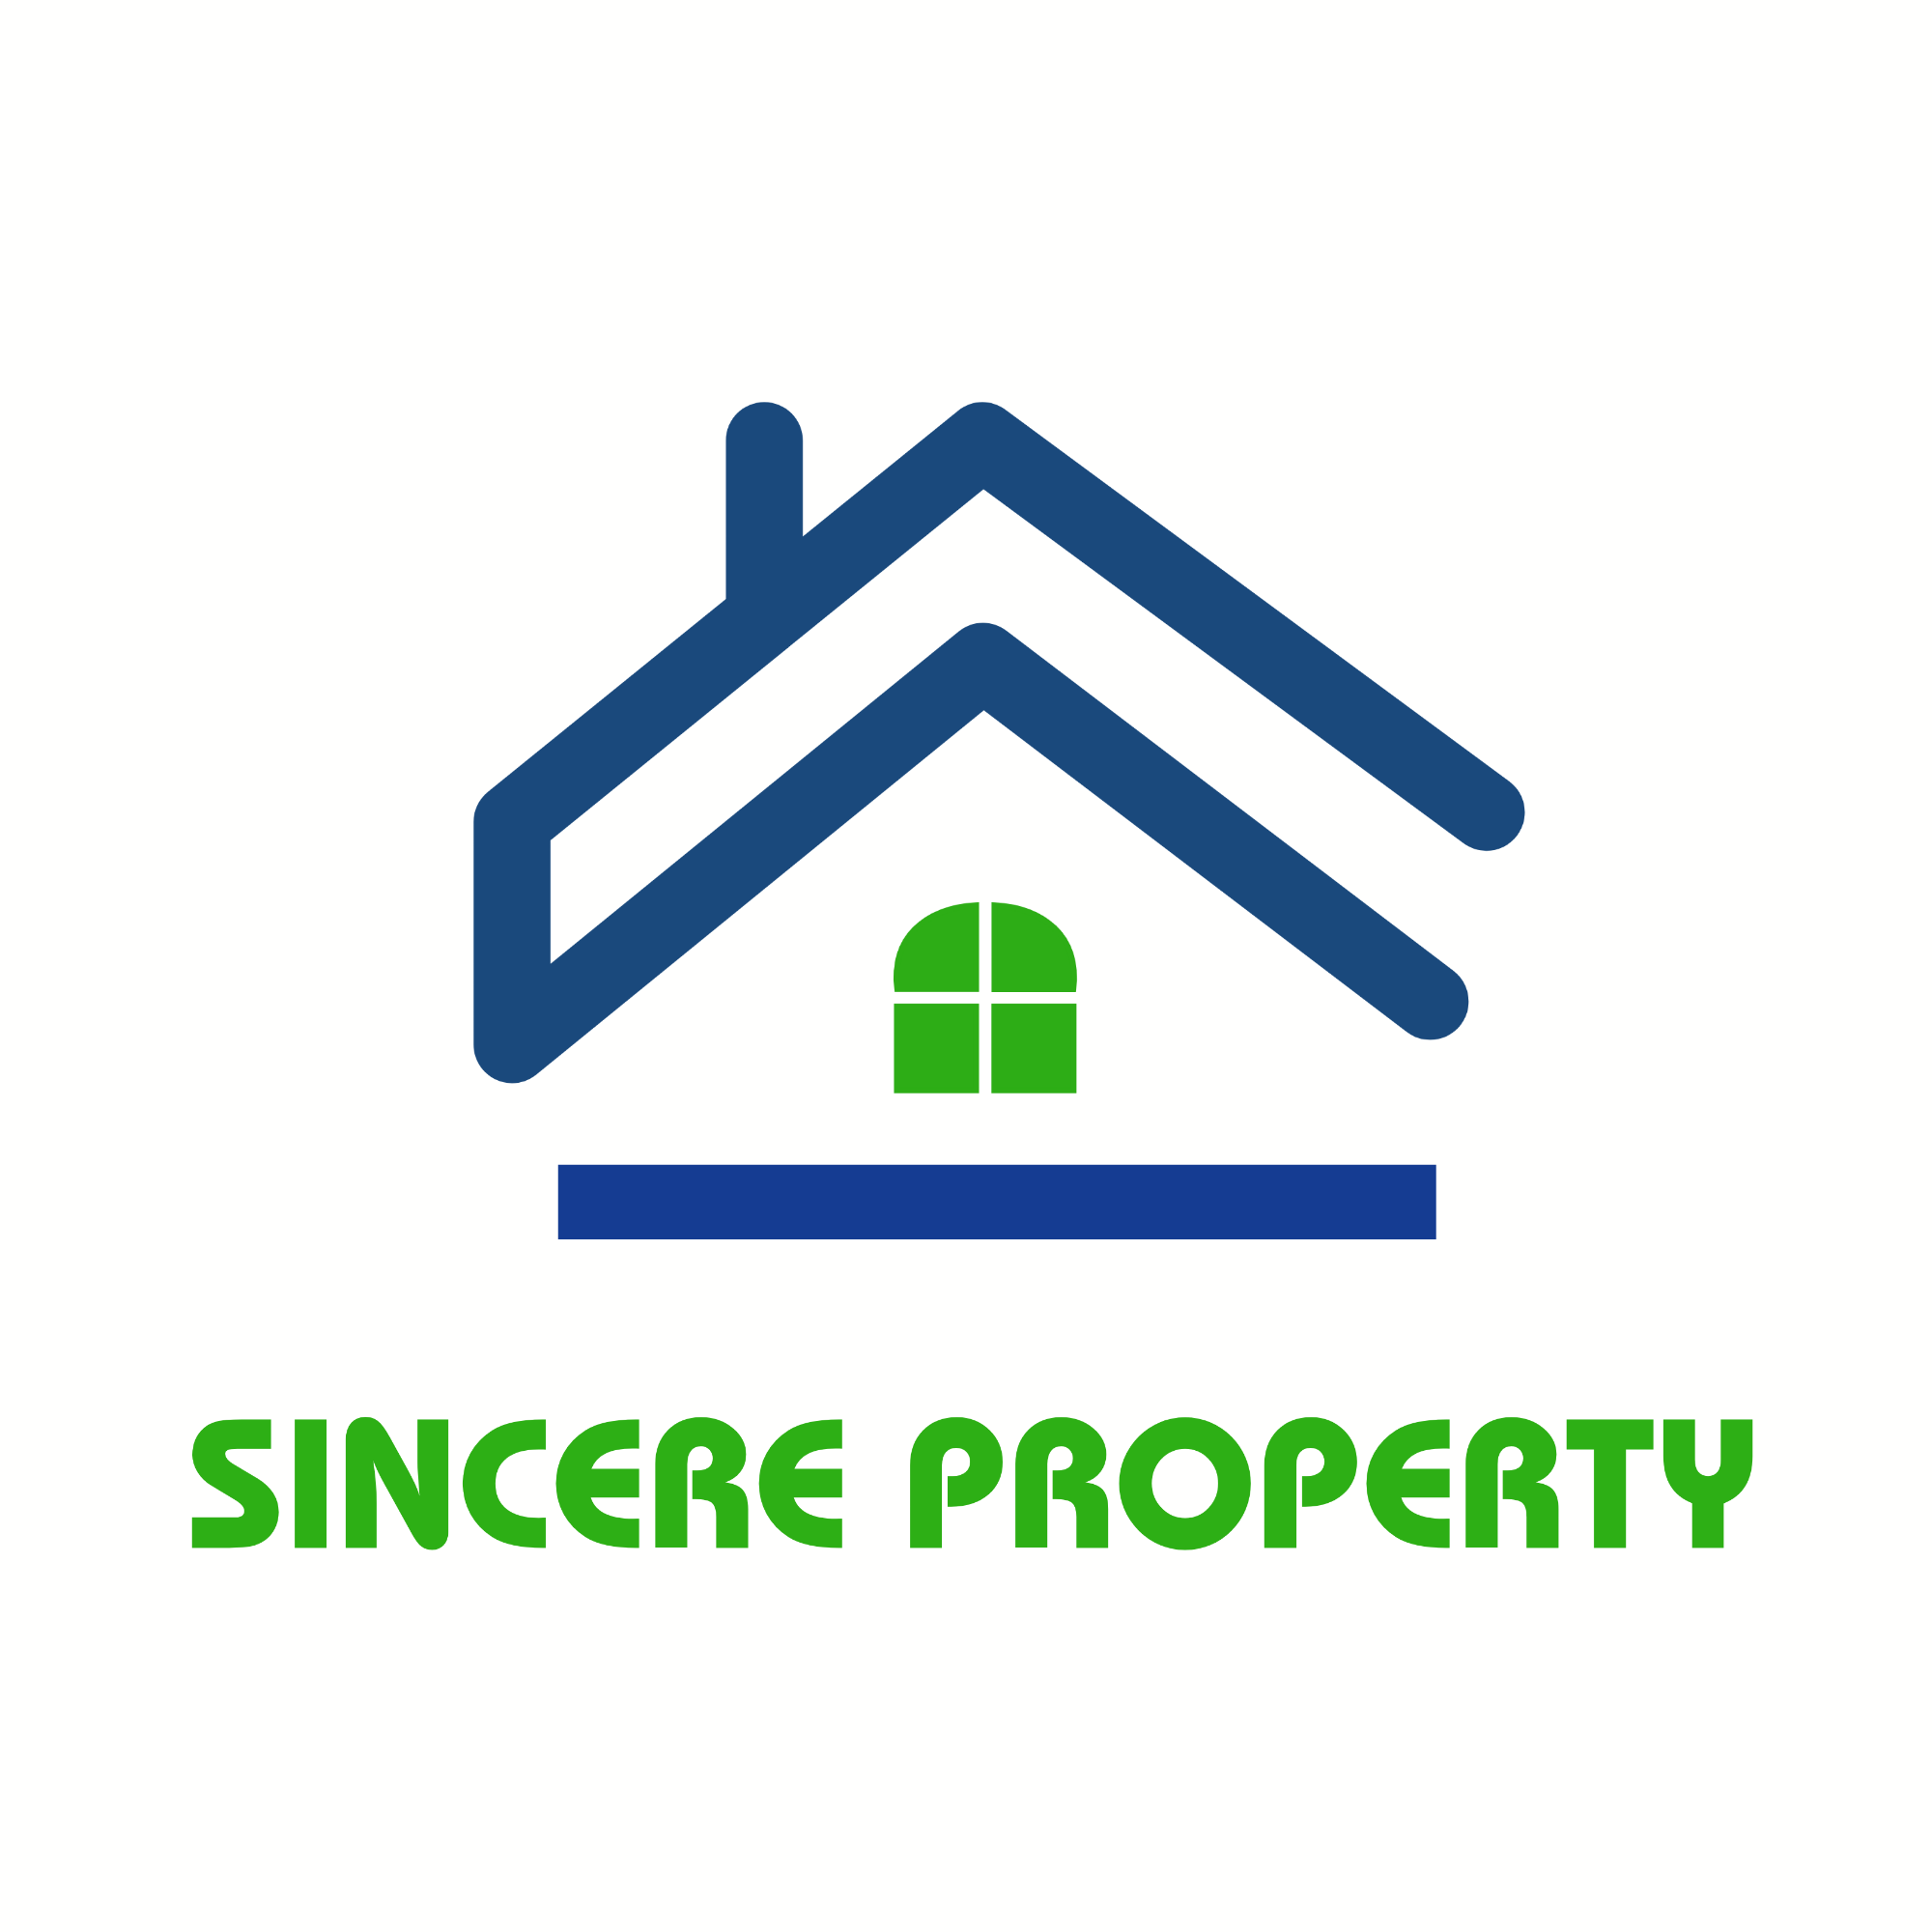 Sincere Property